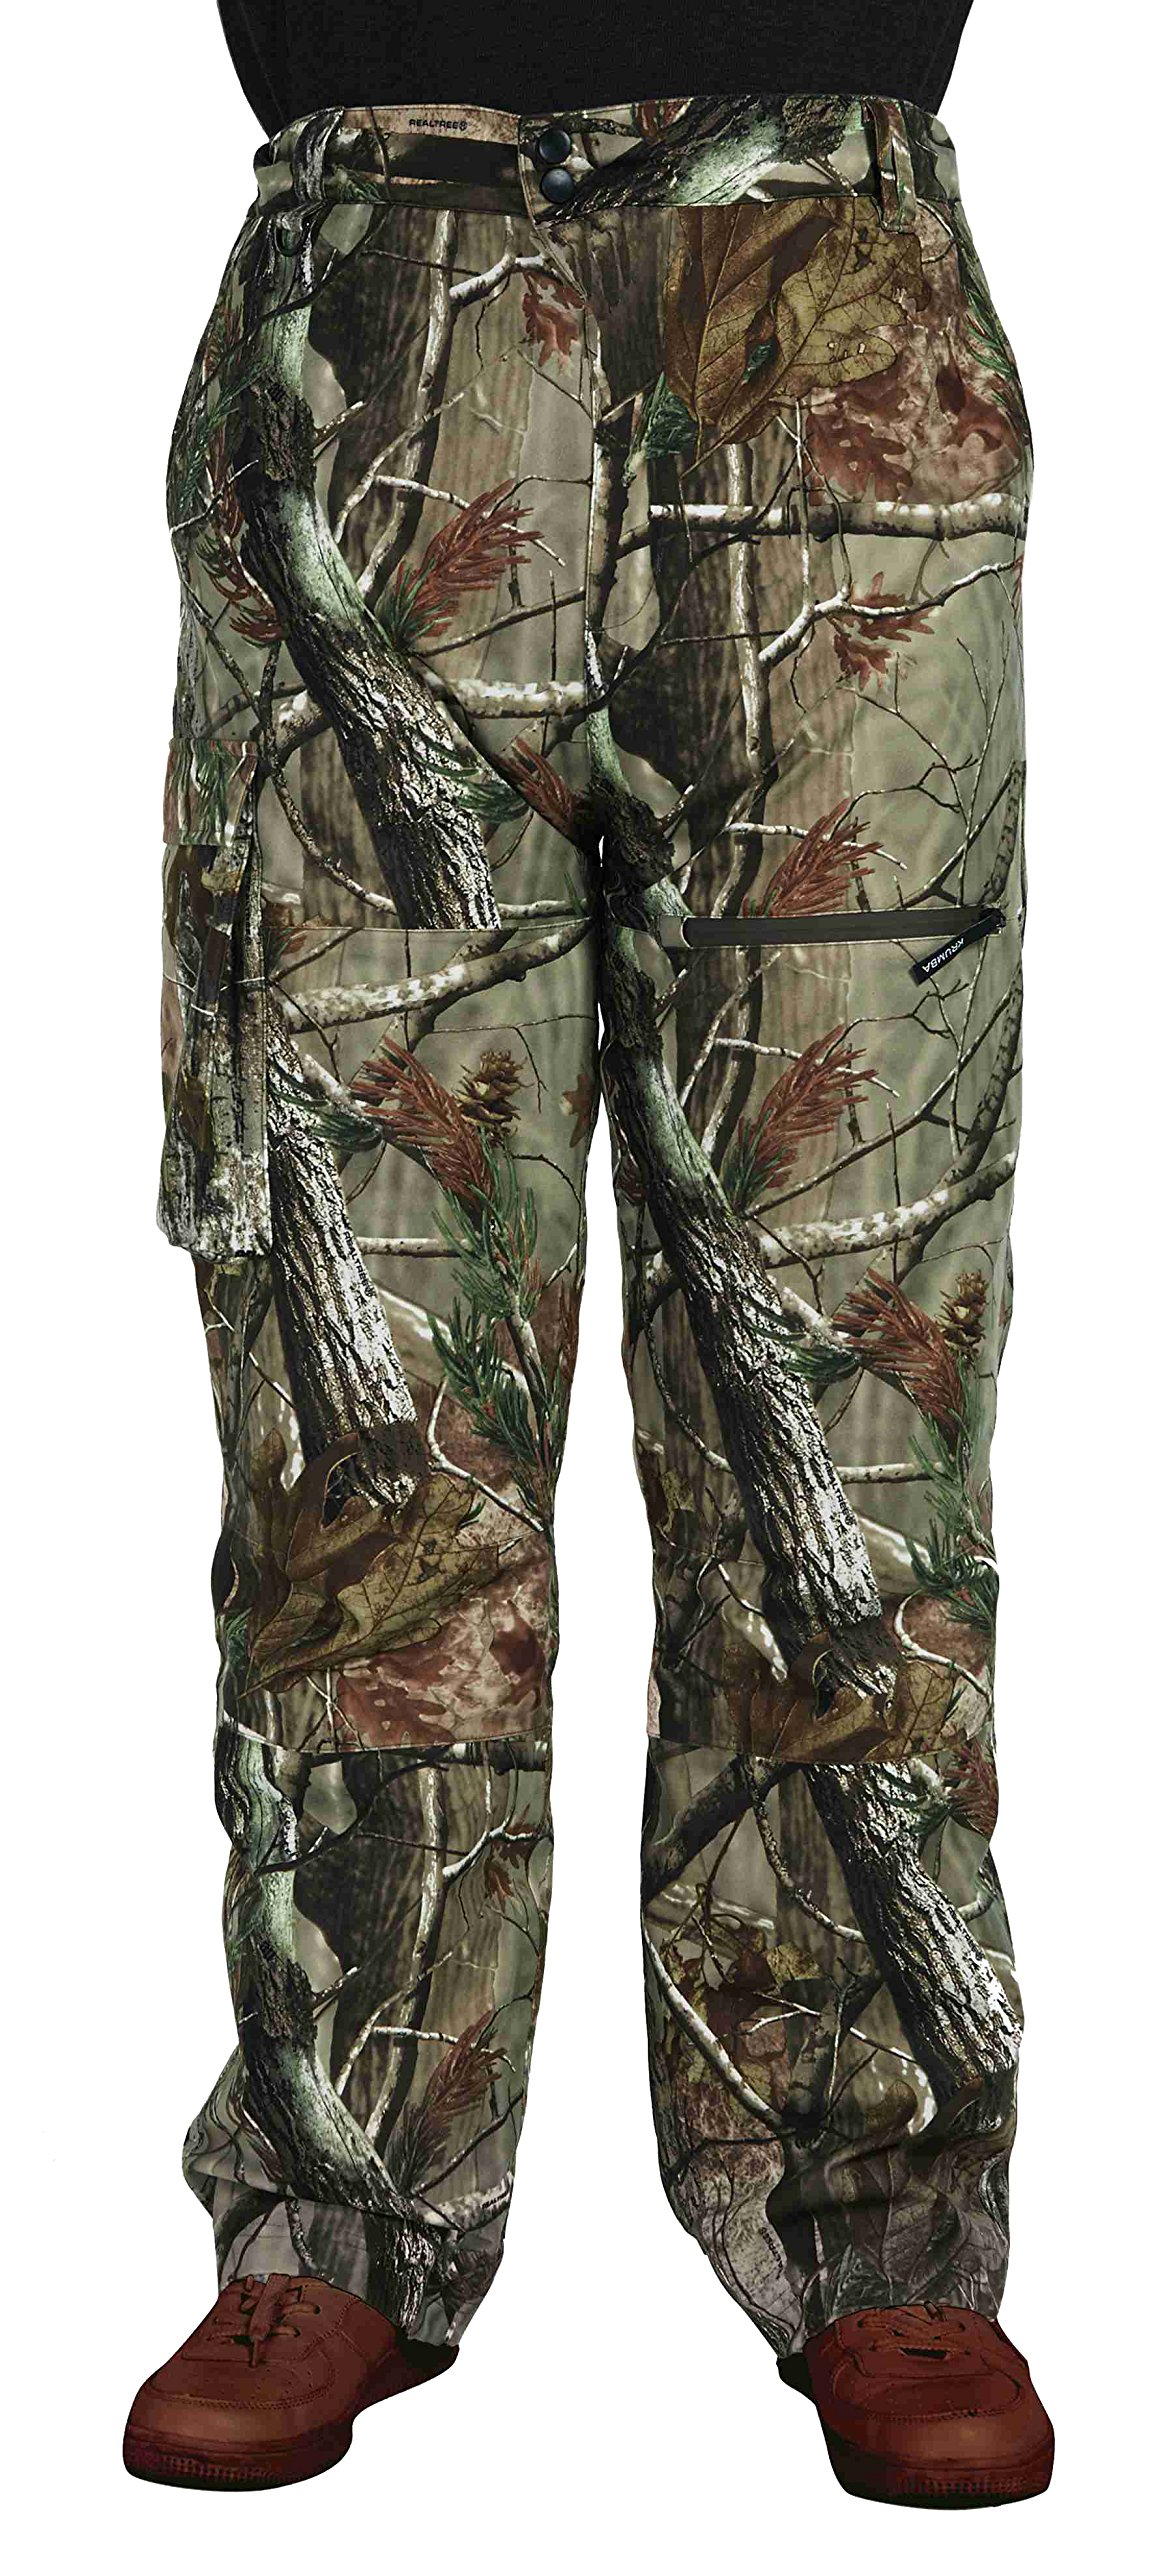 Krumba Men's Camouflage Hunting Windproof Waterproof Seam Sealed Pant Camo2 Size S by Krumba